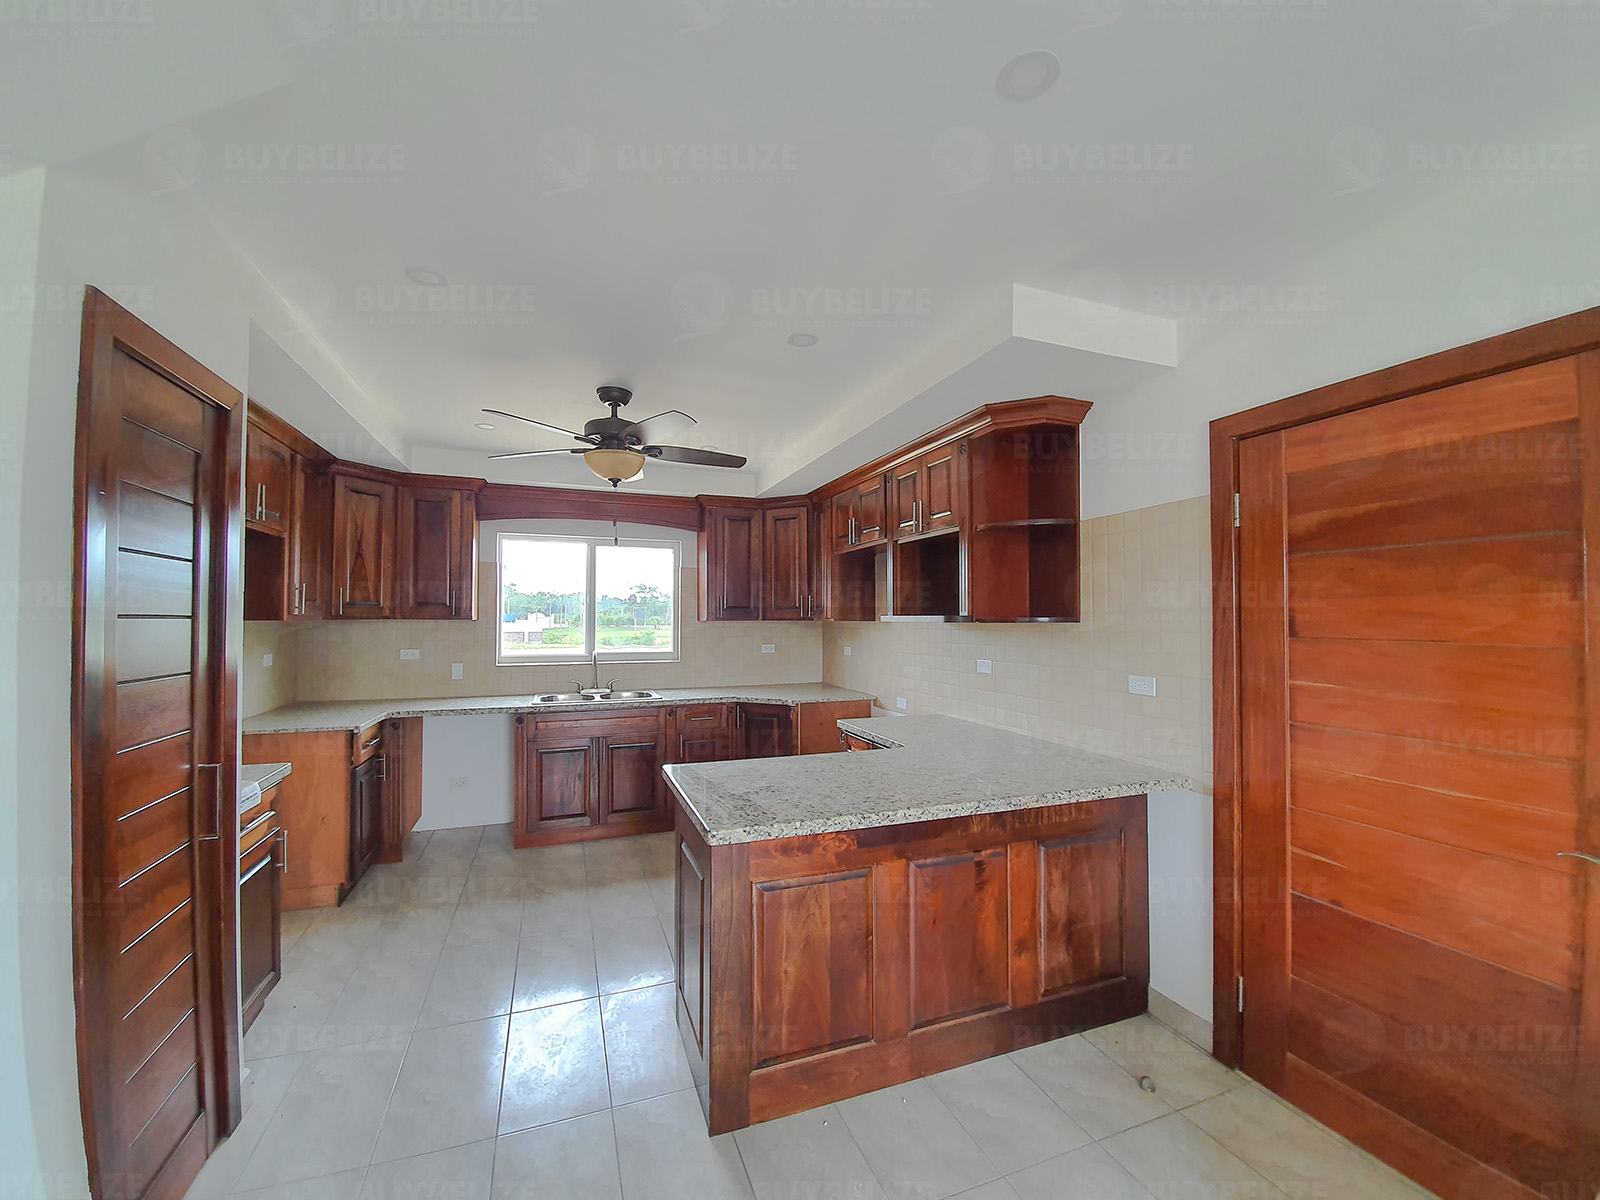 3 Bed 2.5 Bath House for Rent in Ladyville